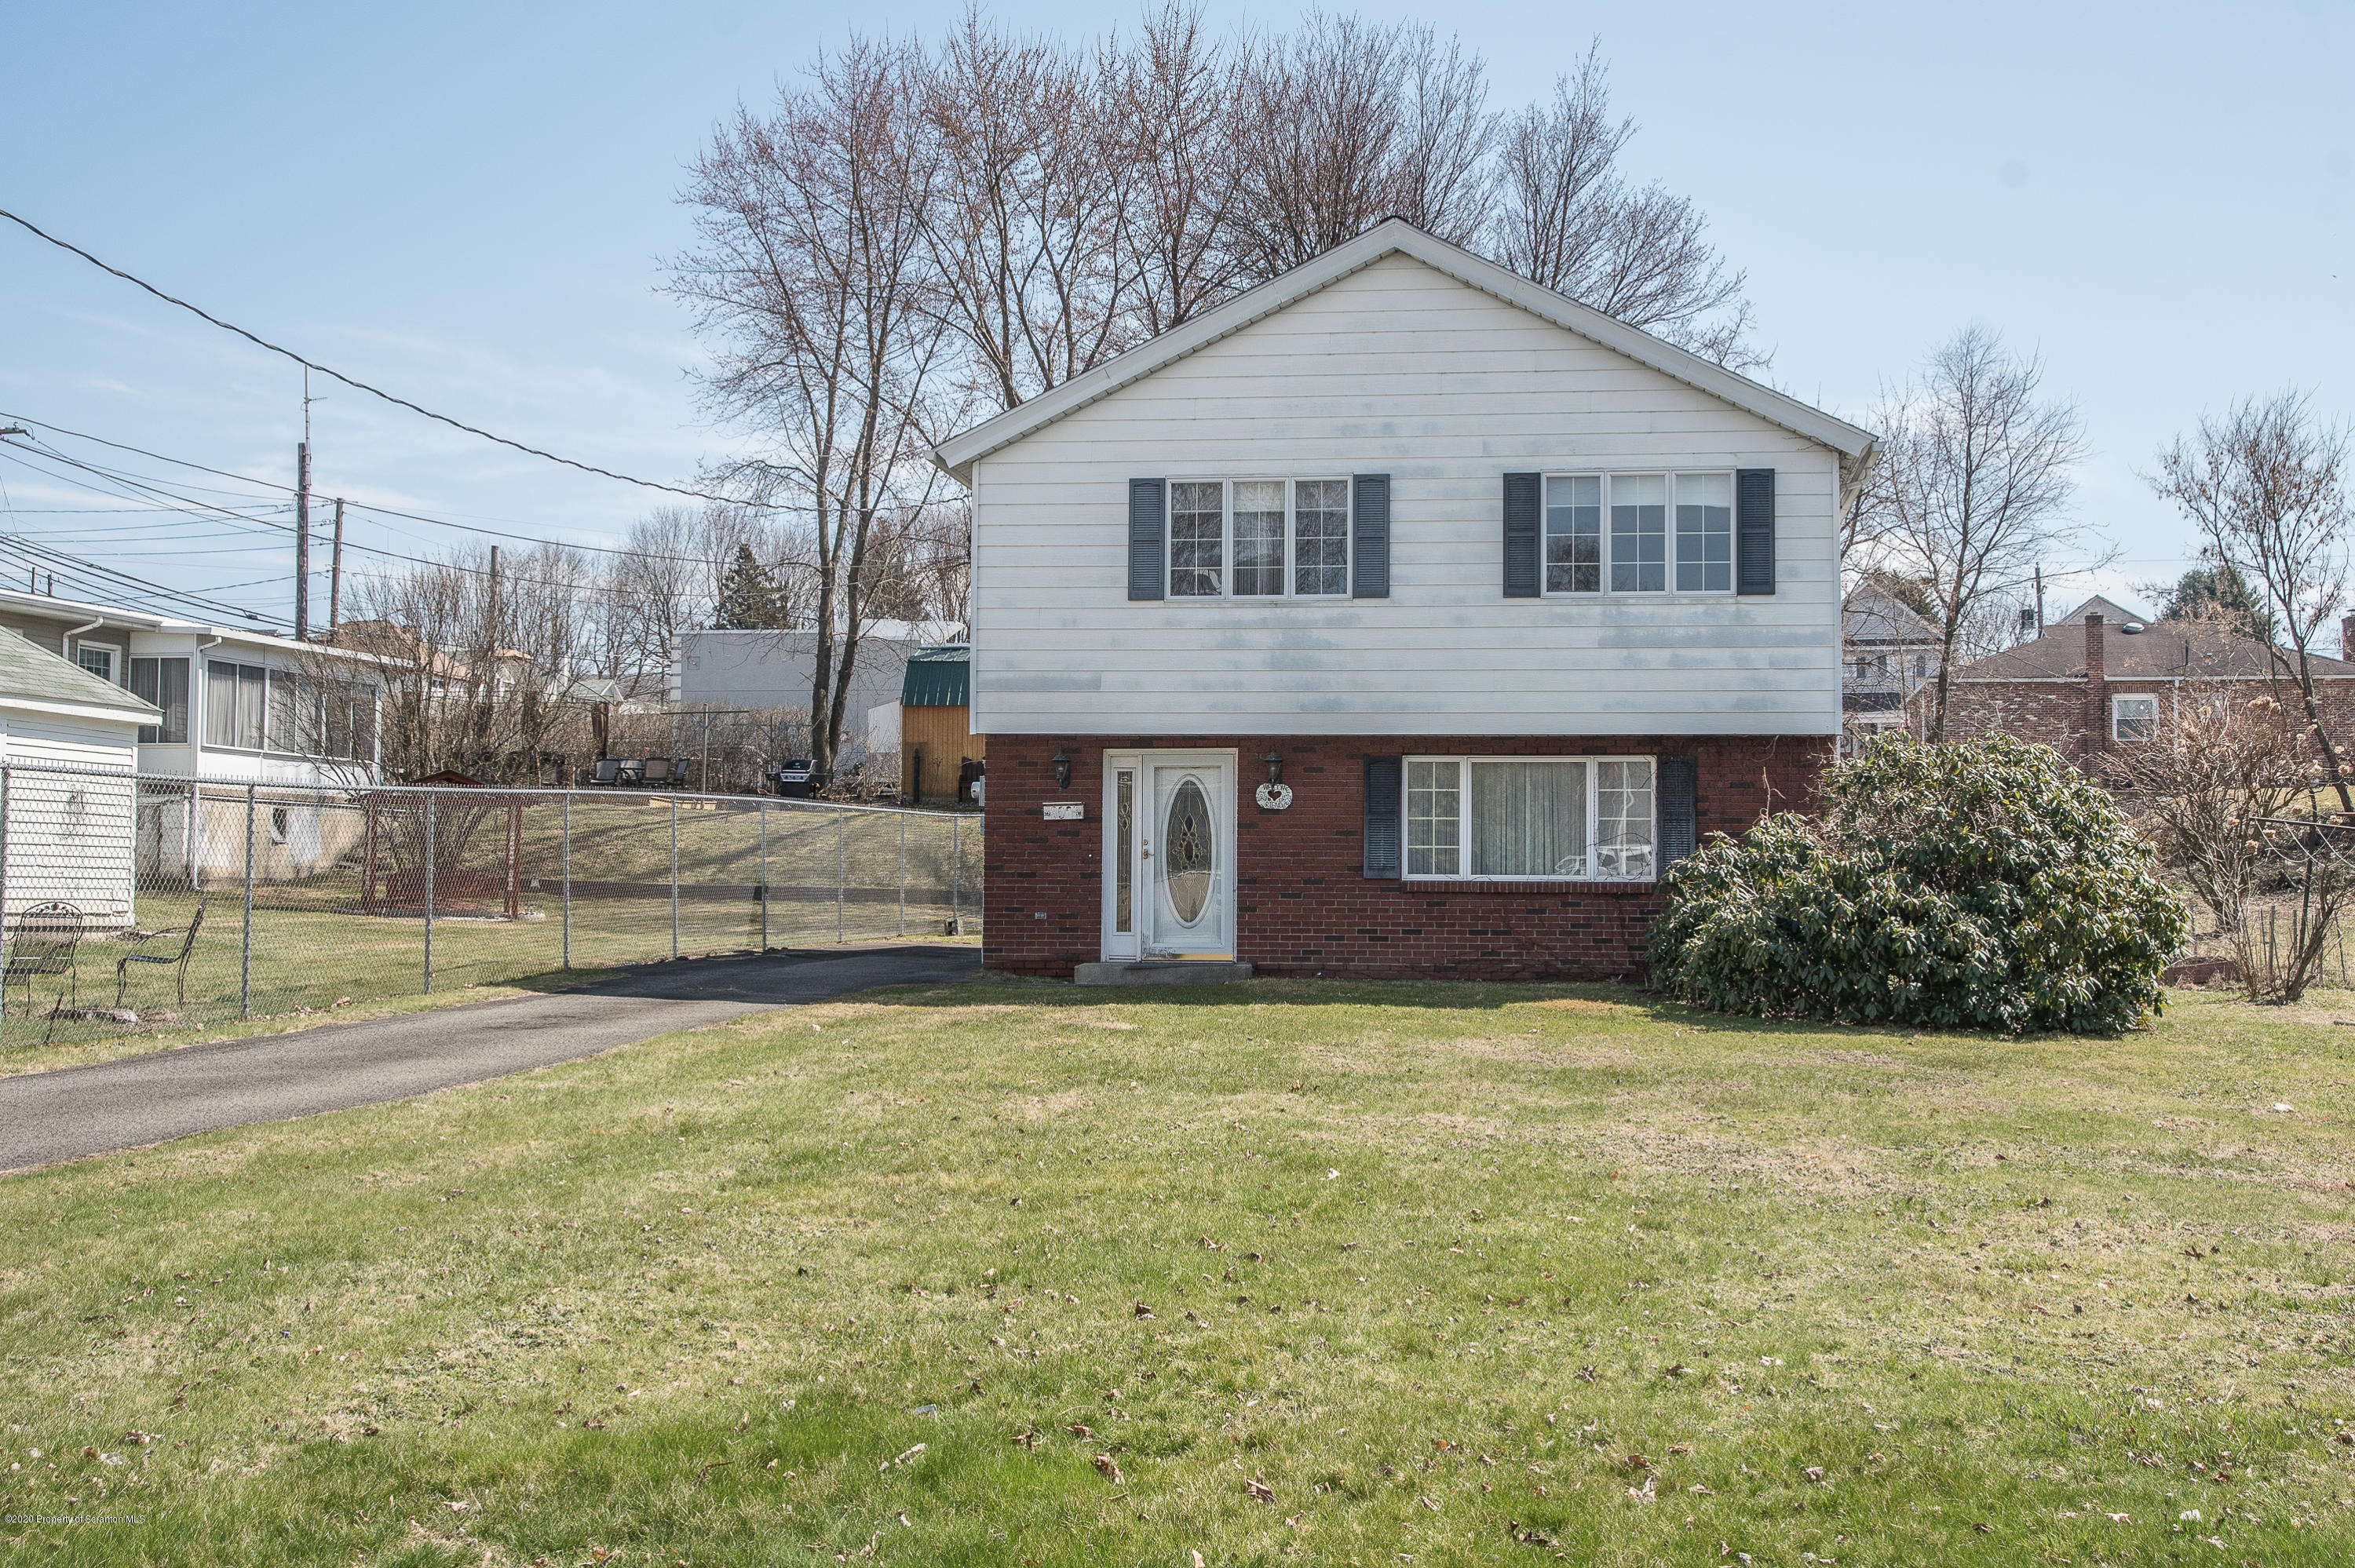 396 Lane St, Jessup, Pennsylvania 18434, 3 Bedrooms Bedrooms, 8 Rooms Rooms,2 BathroomsBathrooms,Single Family,For Sale,Lane,20-1250